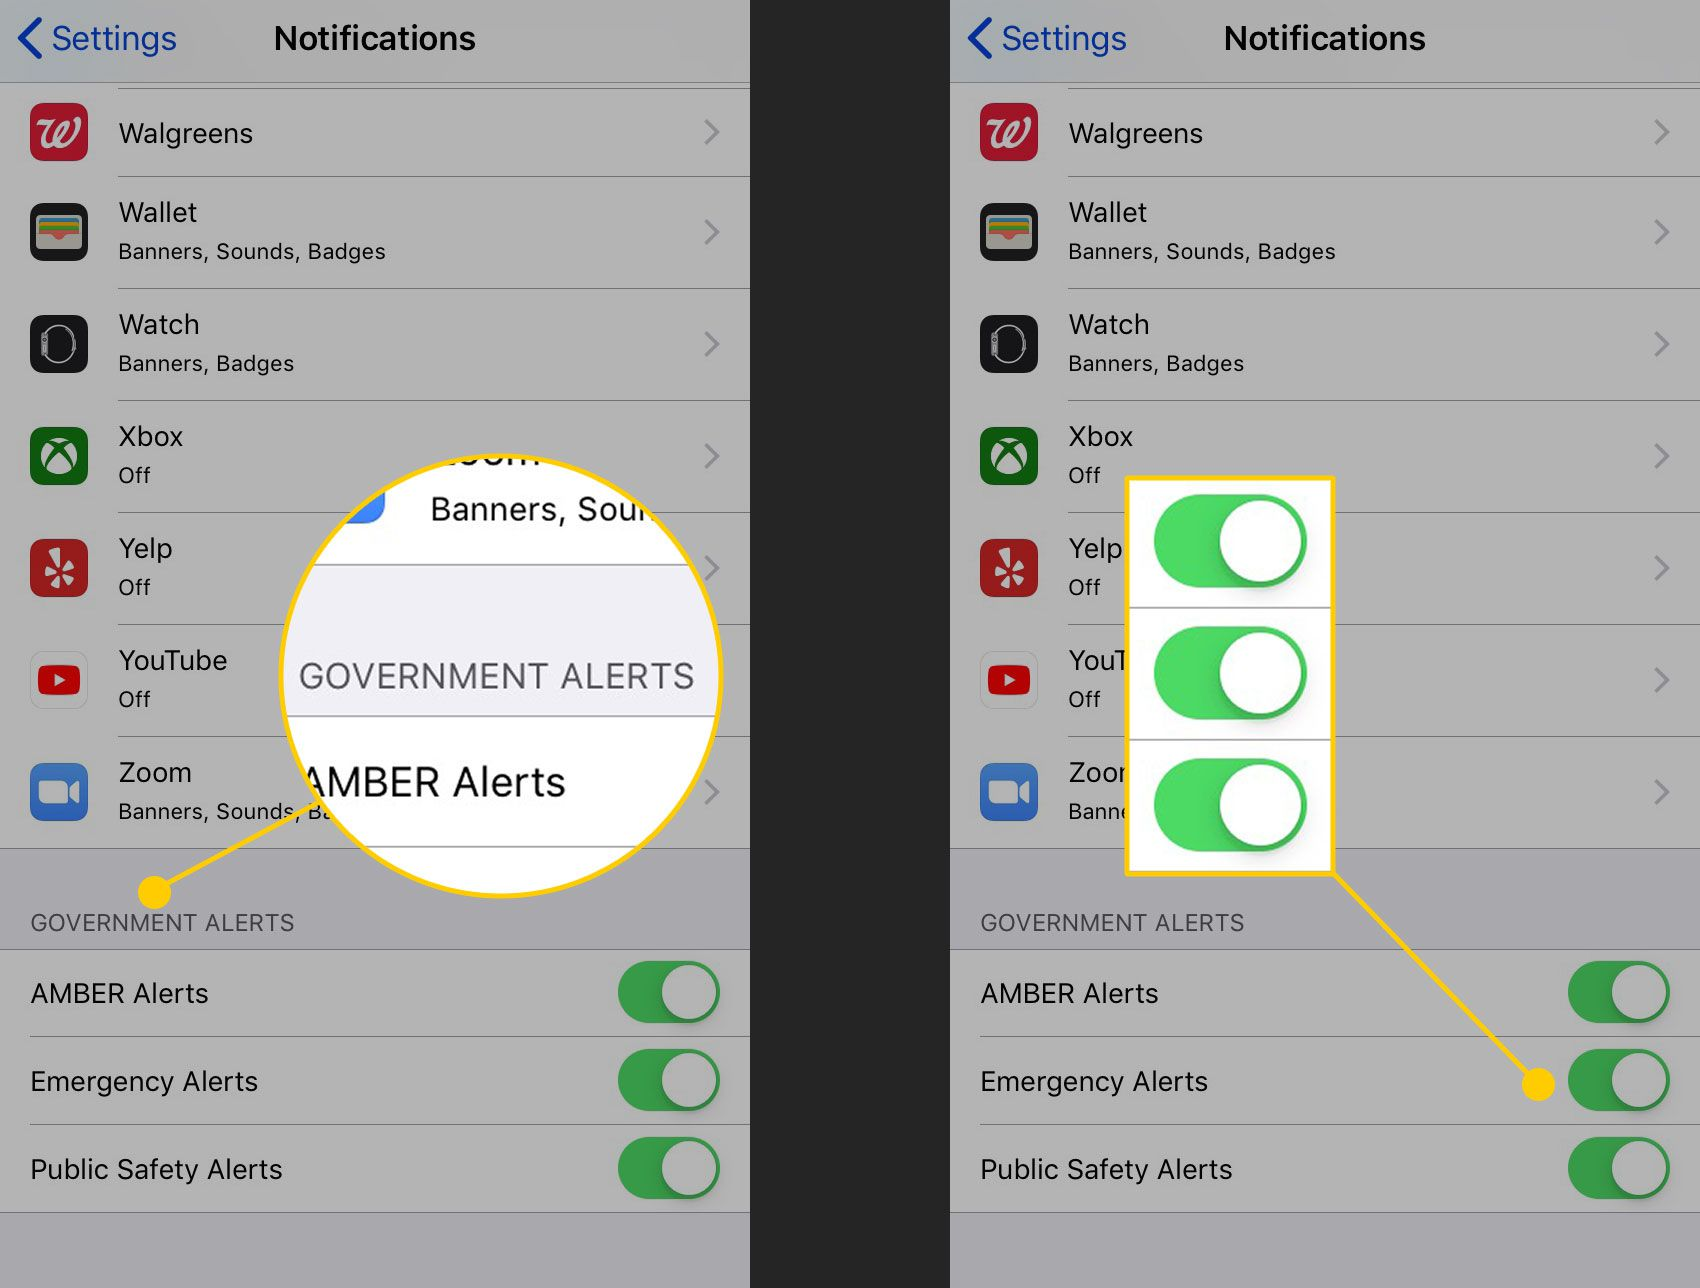 How to Turn Off Emergency and Amber Alerts on iPhone